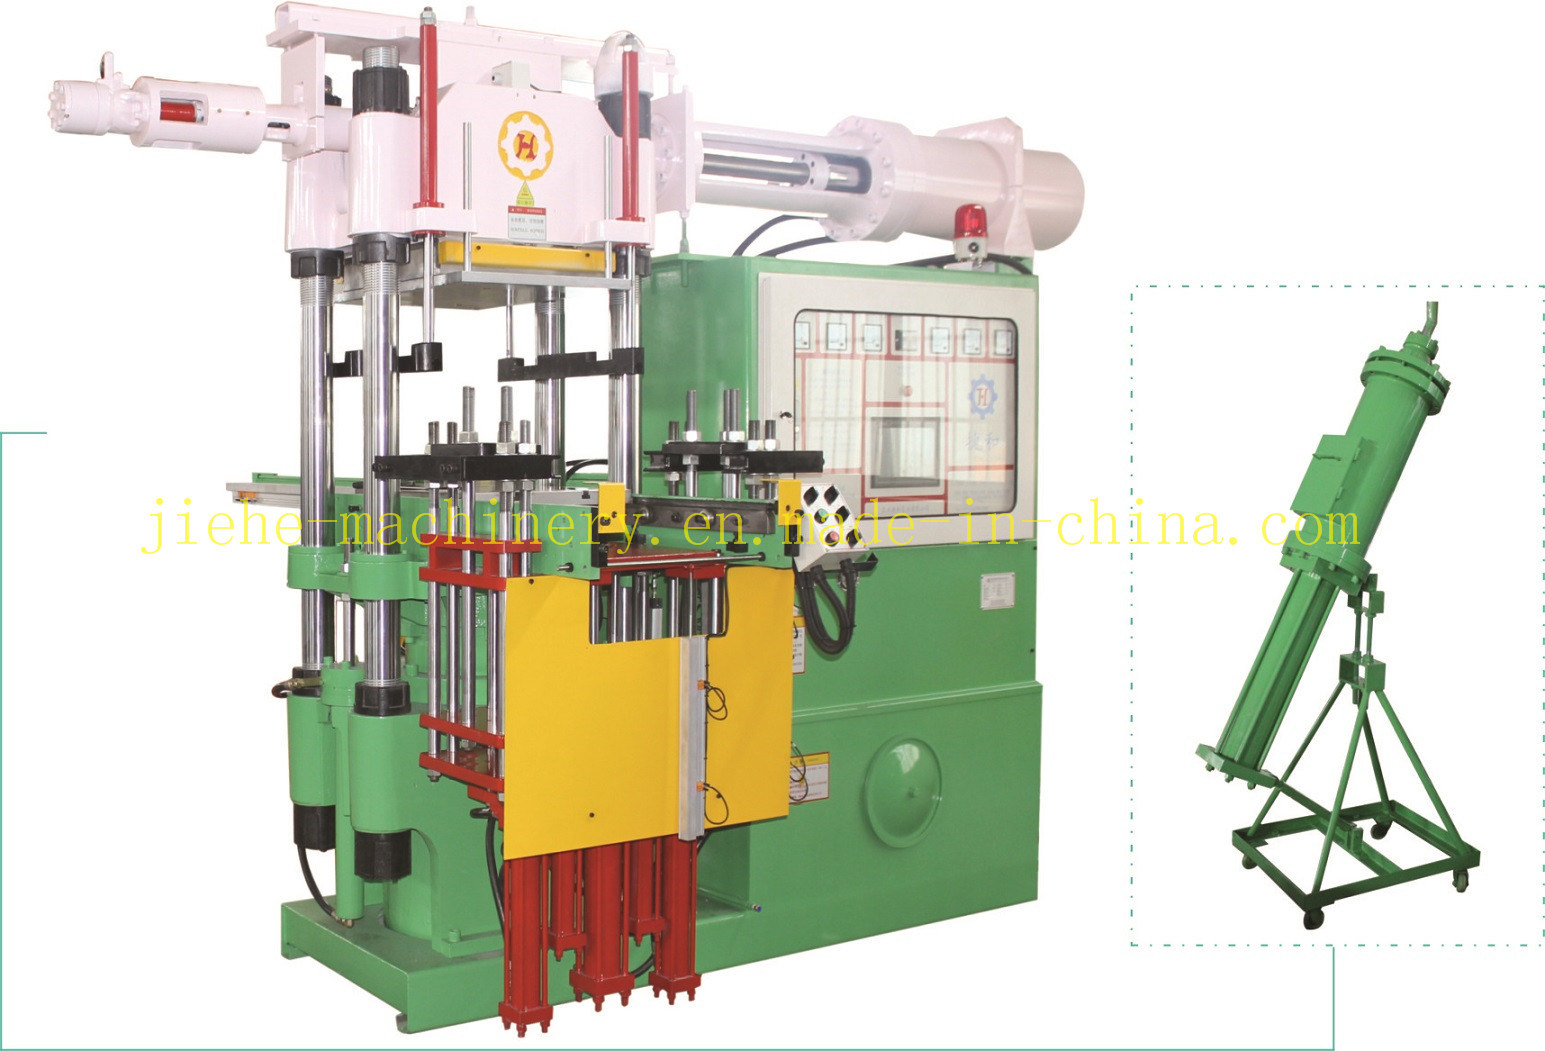 Rubber Silicone Bellow Injection Molding Machine with CE&ISO